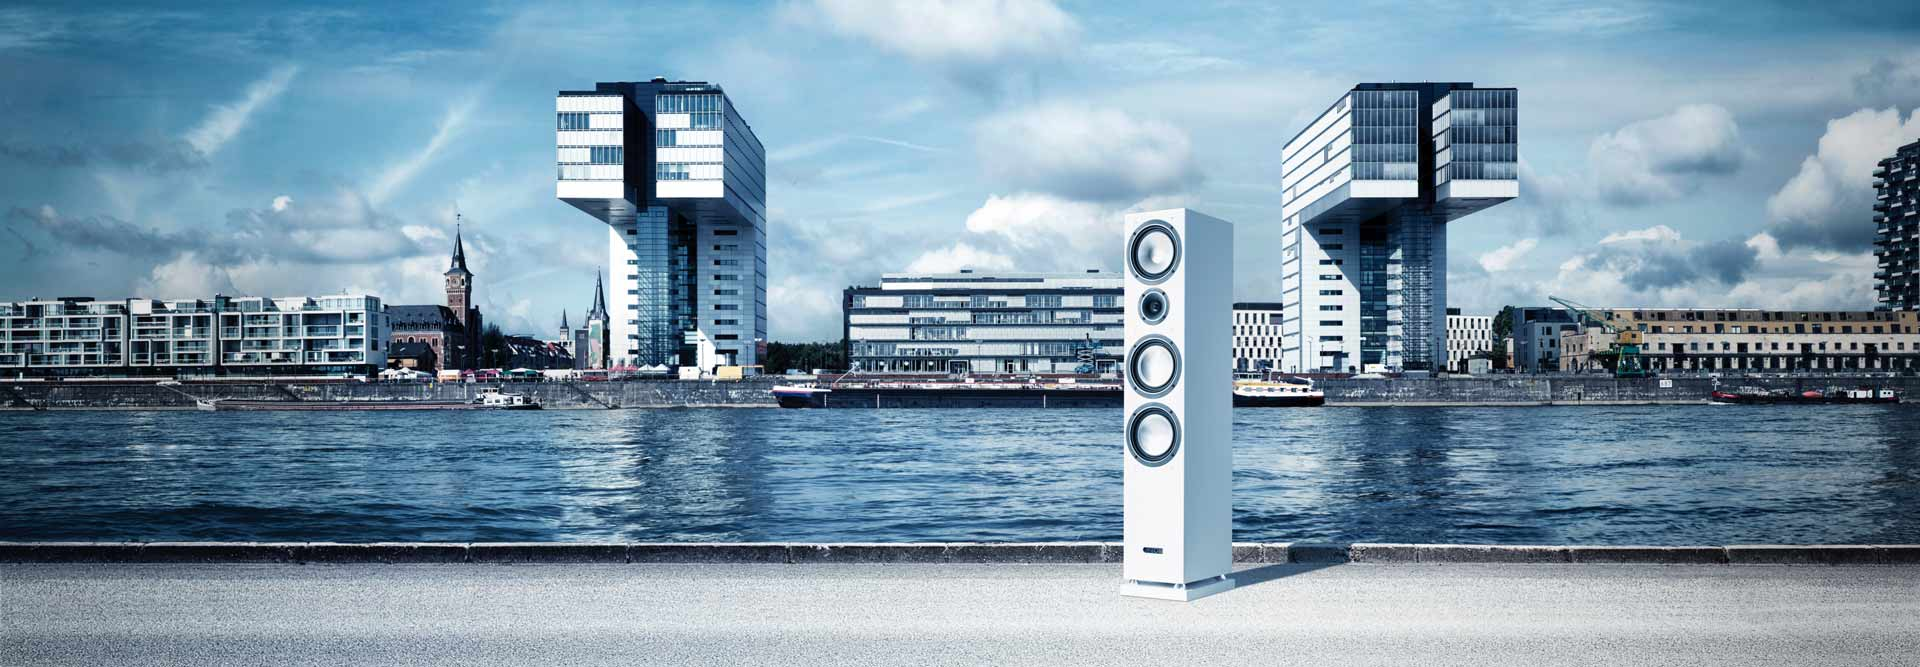 Loudspeaker in front of a river